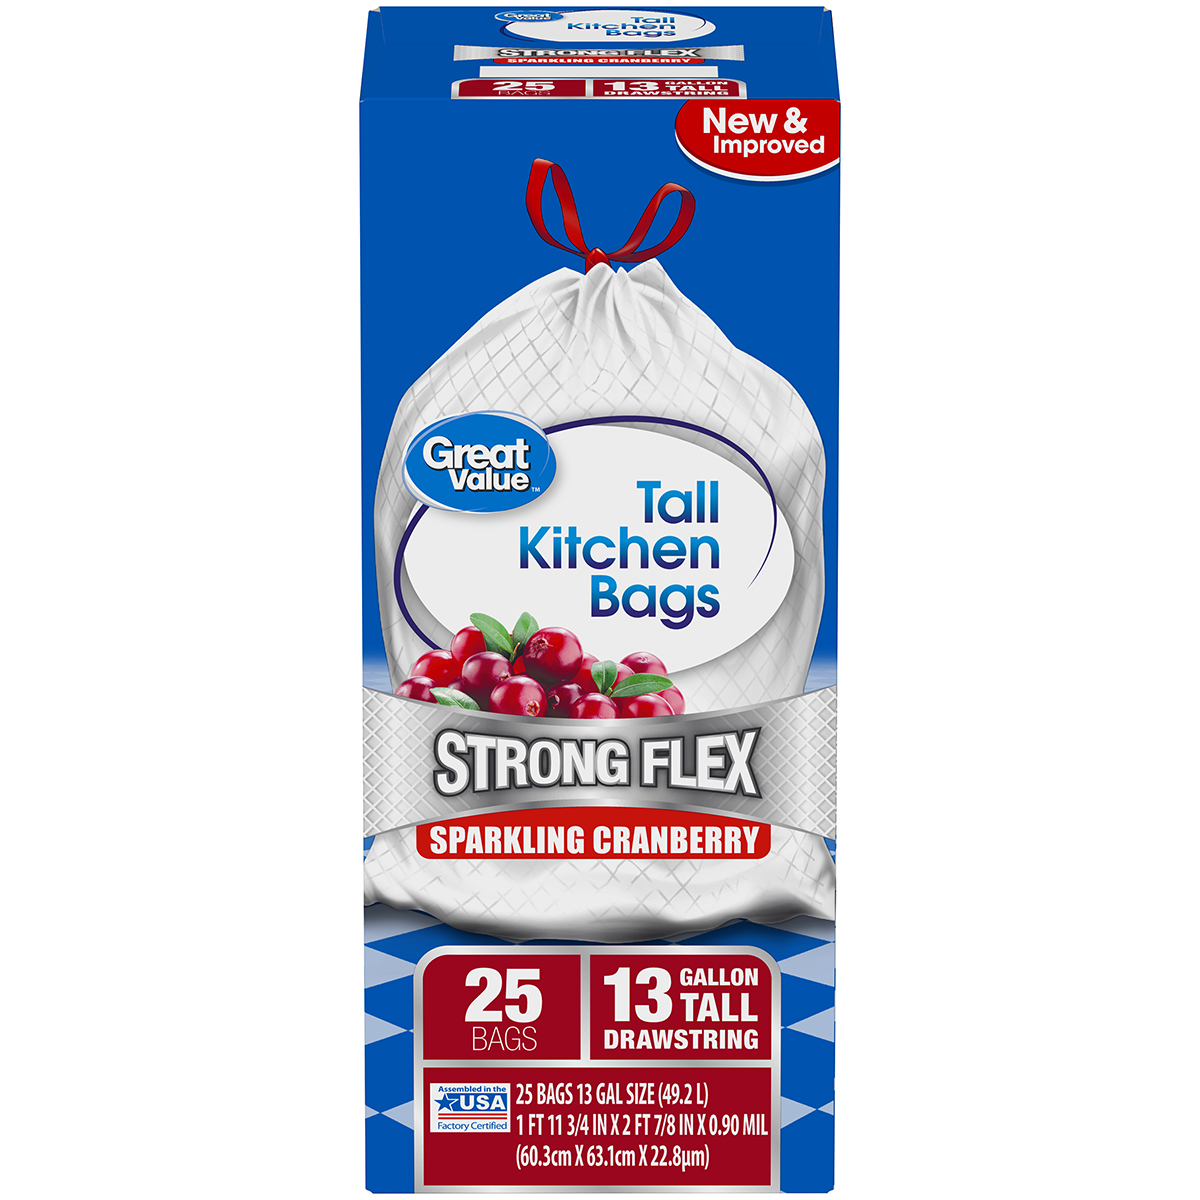 (Pack of 2) Great Value Strong Flex Tall Kitchen Drawstring Trash Bags, Sparkling Cranberry, 13 Gallon, 25 Count